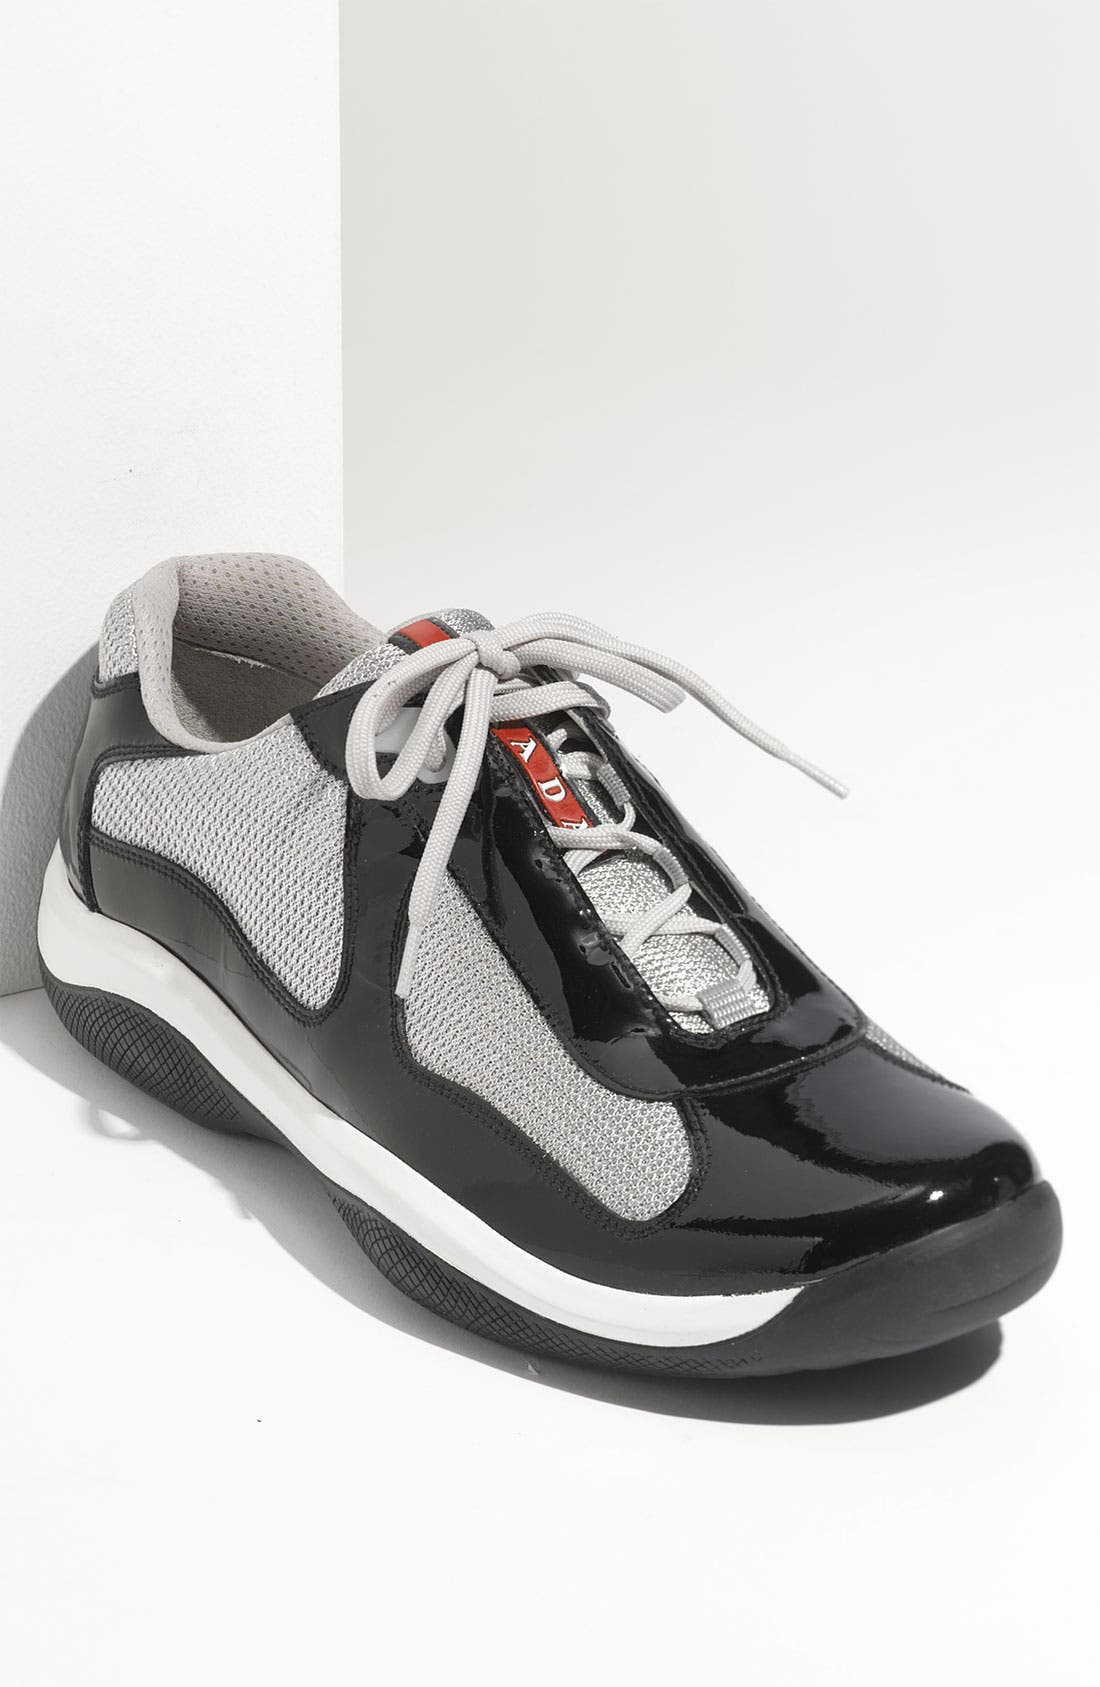 Main Image - Prada 'Punta Ala' Mesh & Leather Sneaker (Men)